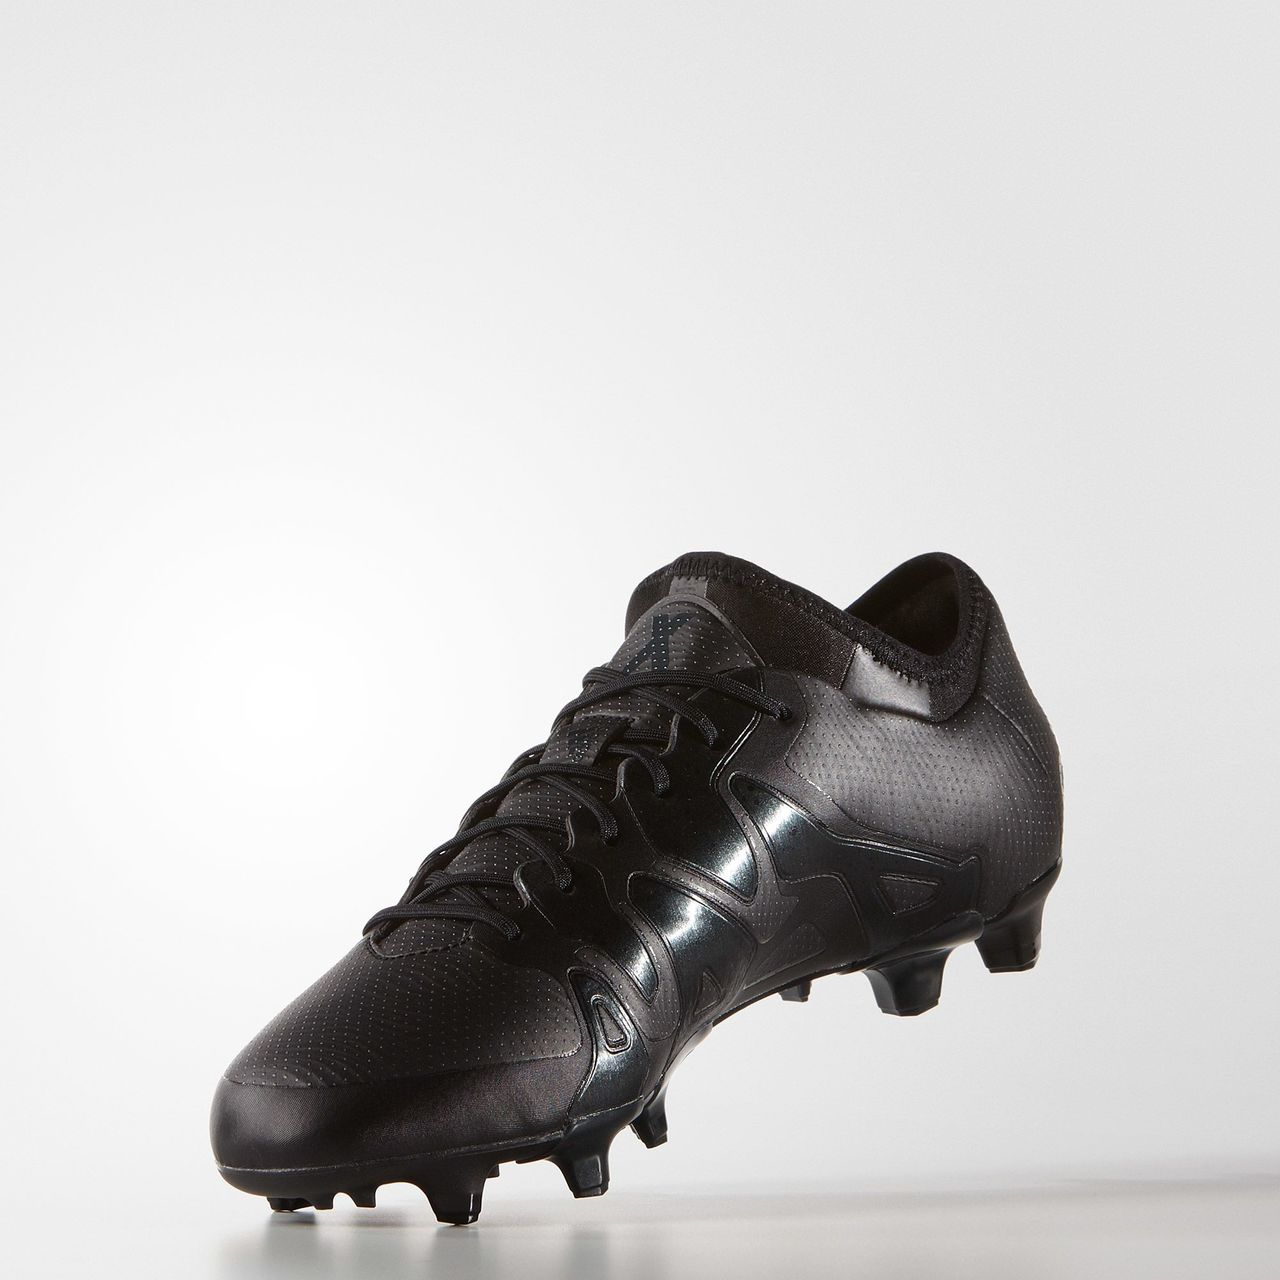 84325830271 promo code for hot sales adidas x 15.1 fluid black firm ground boots core black  black